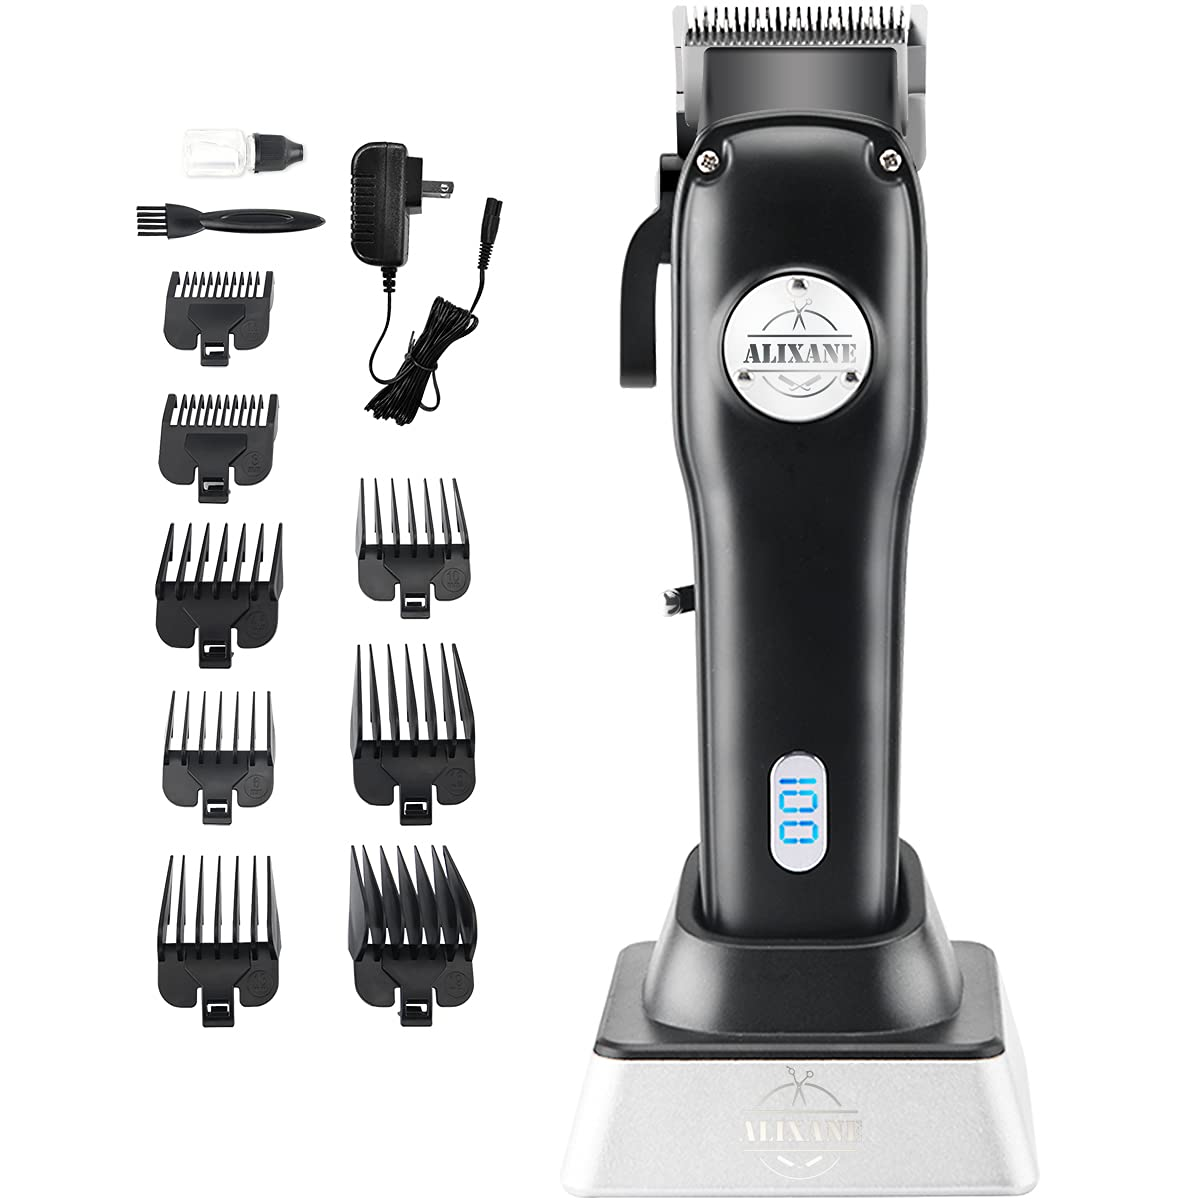 Alixane Cordless Hair Clipper Trimmer for Men, Professional Rechargeable Hair Cutting Kit with Charging Stand and 8 Guided Combs, Haircut Grooming Set for Home and Barbers